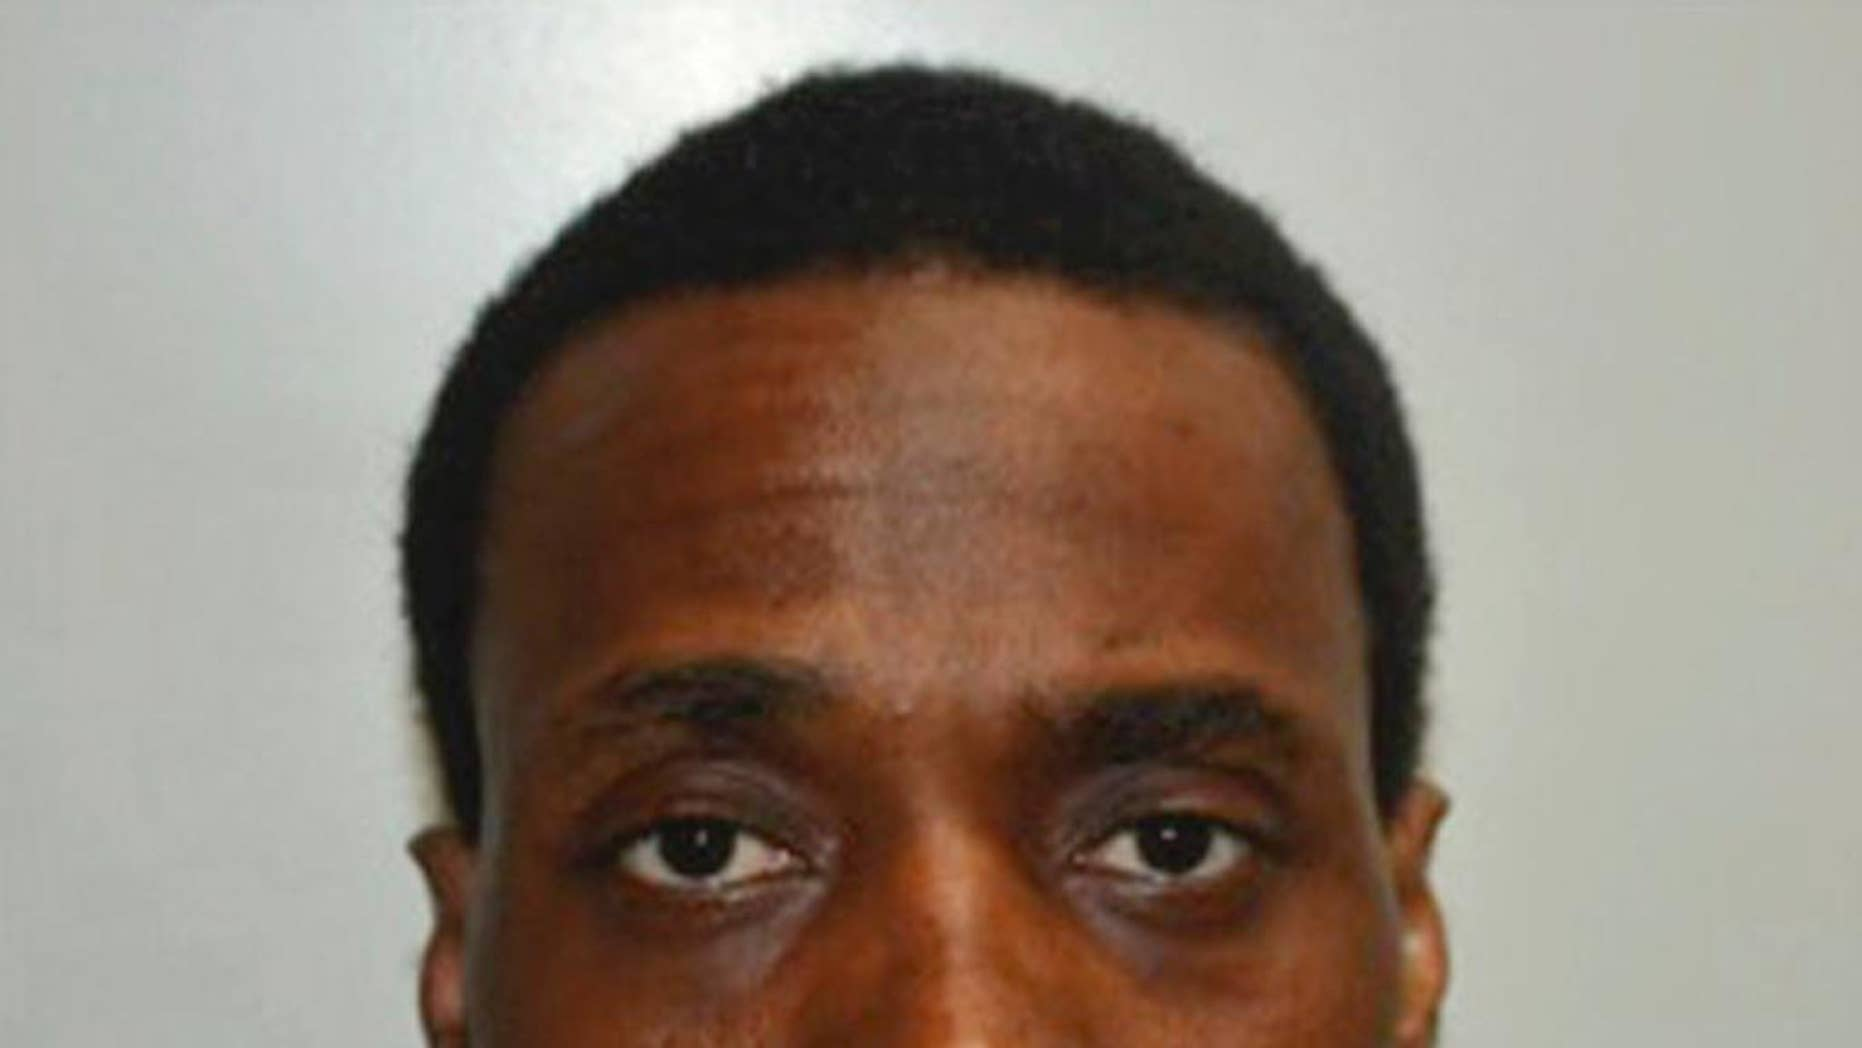 FILE - This undated photo provided by the Fresno Police Department shows Kori Ali Muhammad a suspect in the Fresno, Calif., shooting on Tuesday, April 18, 2017. The attorney for a black man charged with multiple counts of first-degree murder following a shooting rampage randomly targeting white men on the streets of Fresno said Thursday, April 27, 2017, that his client suffers from mental illness. (Fresno Police Department via AP, File)